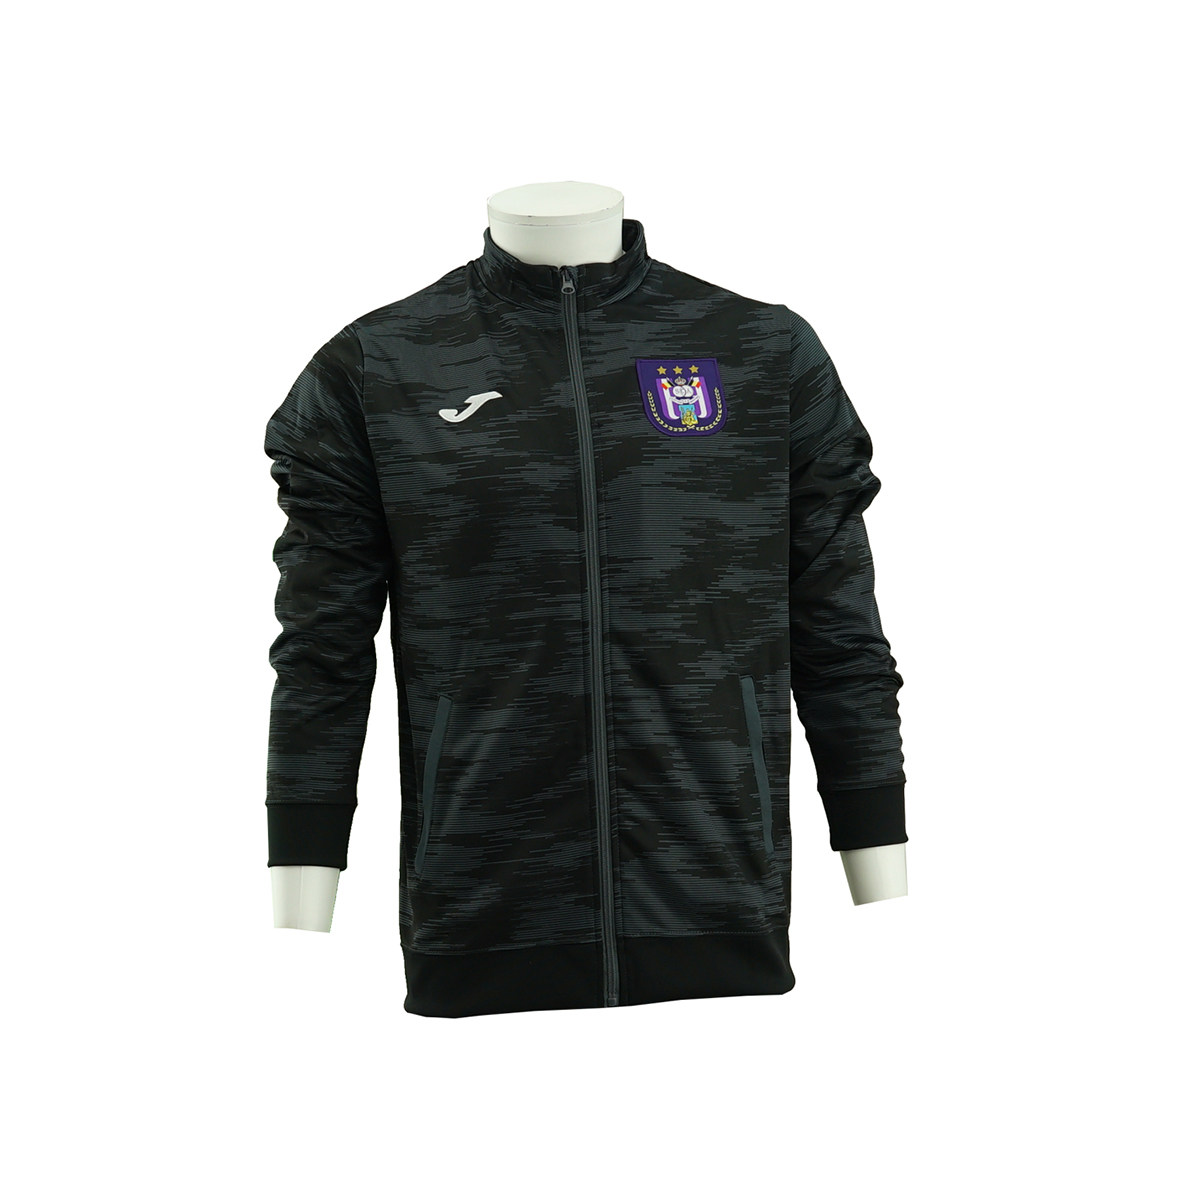 RSCA Anthem Jacket Kids 2020/2021